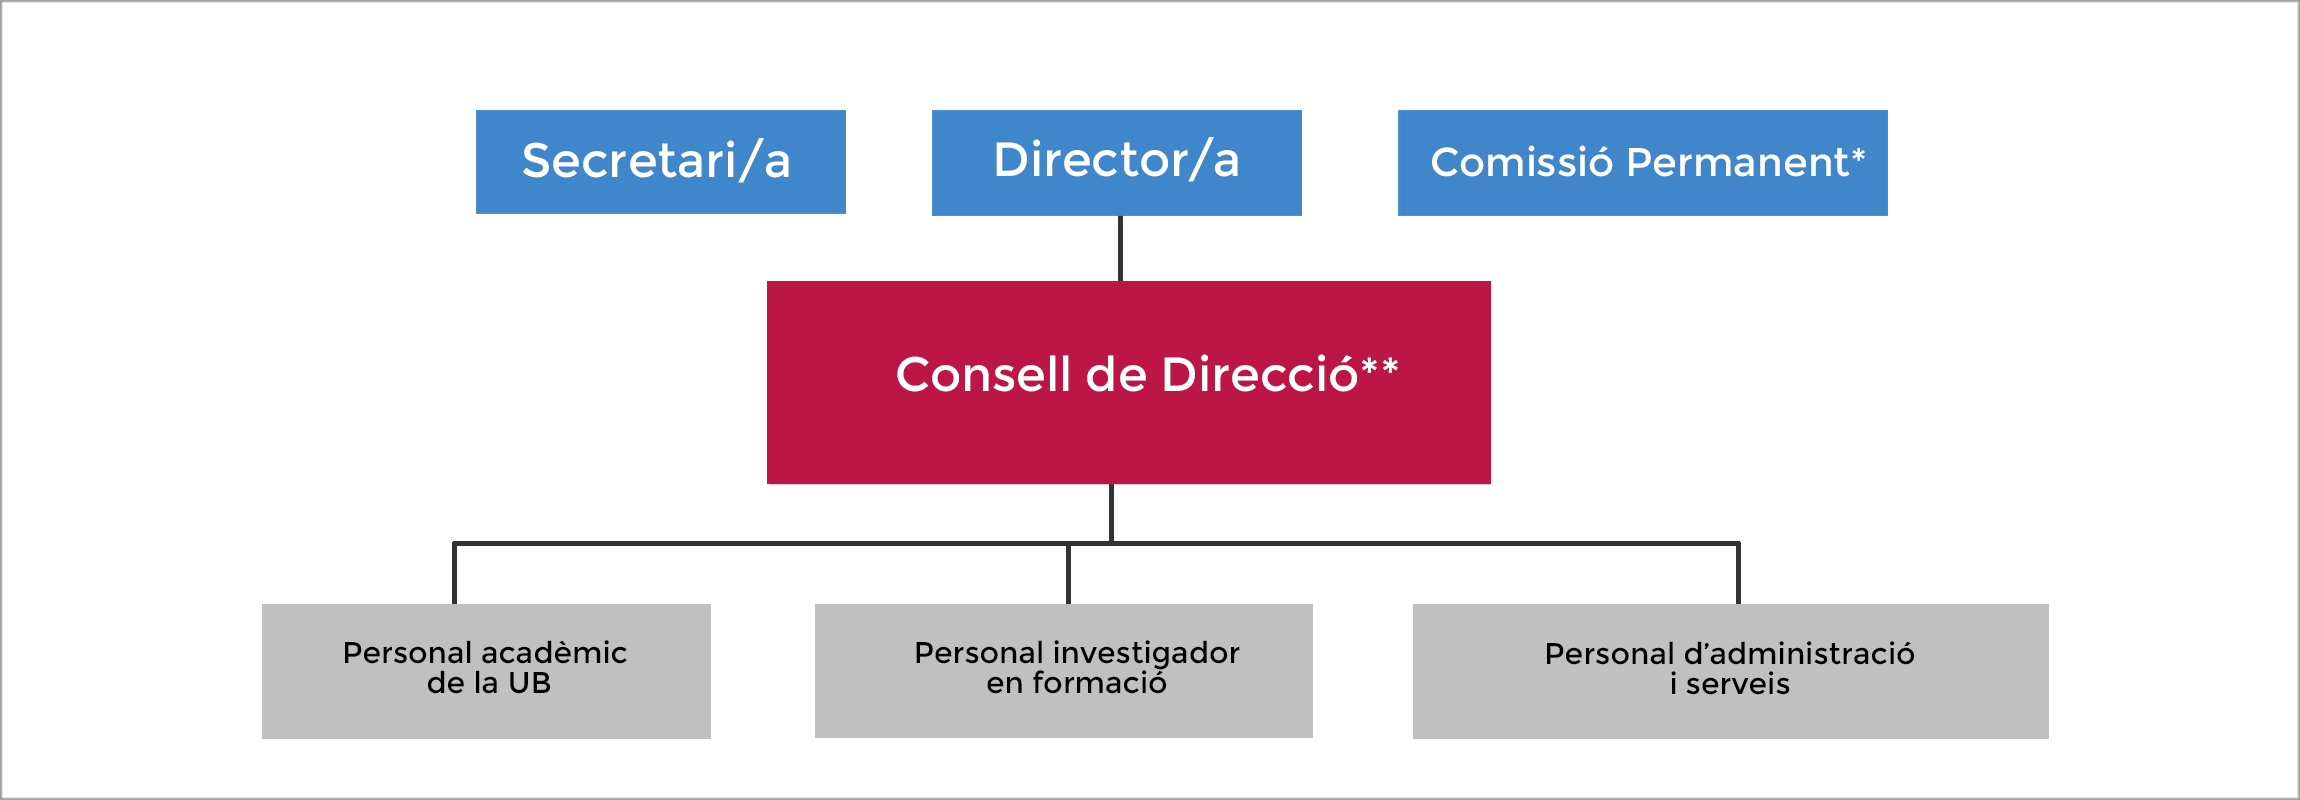 org. chart image